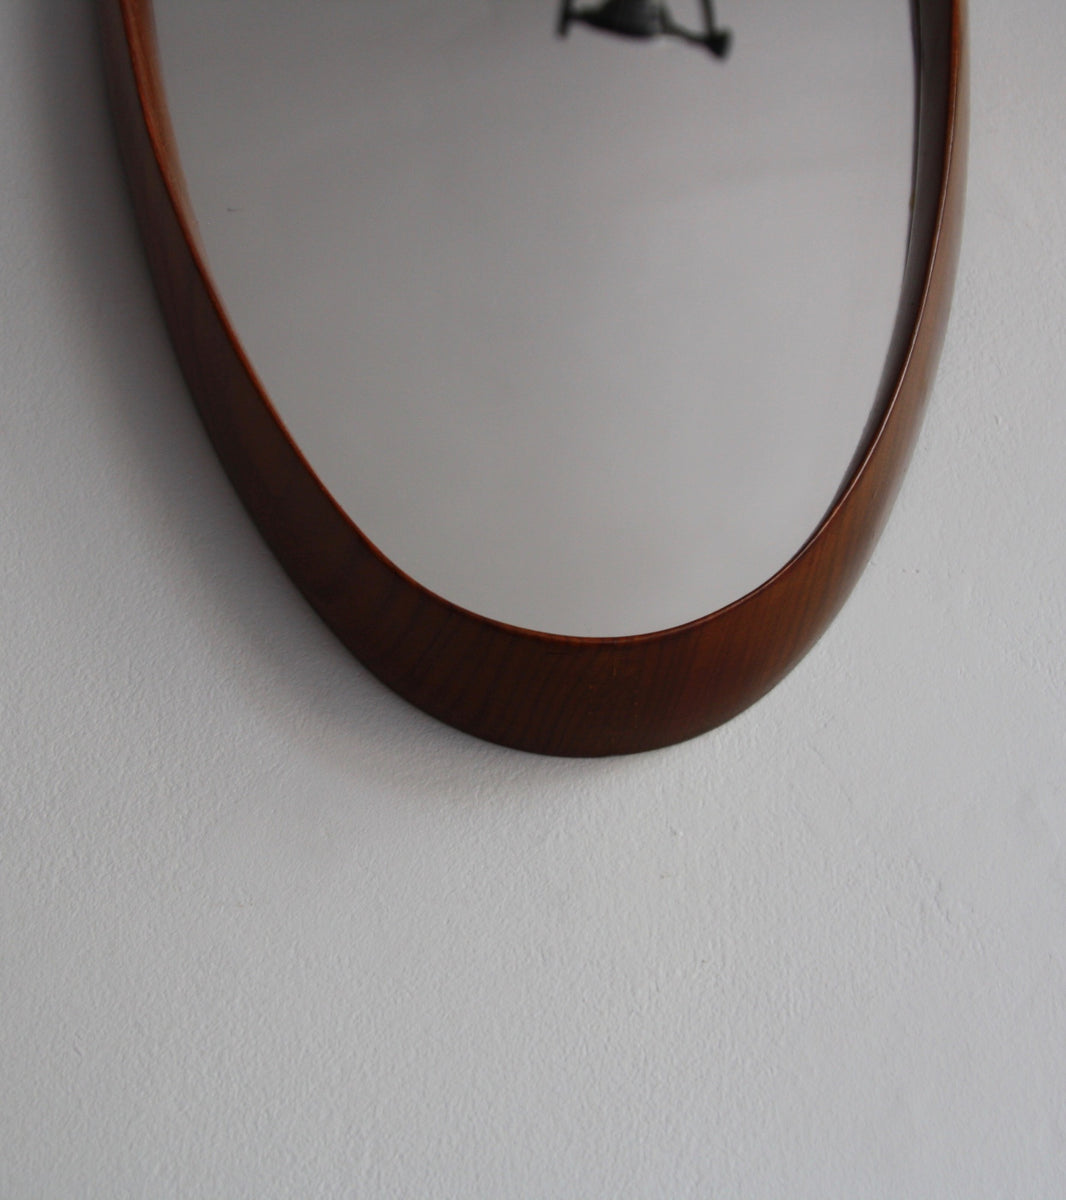 Original Hand-made Teak Oval Mirror with Leather Denmark C. 1950 - Image 9